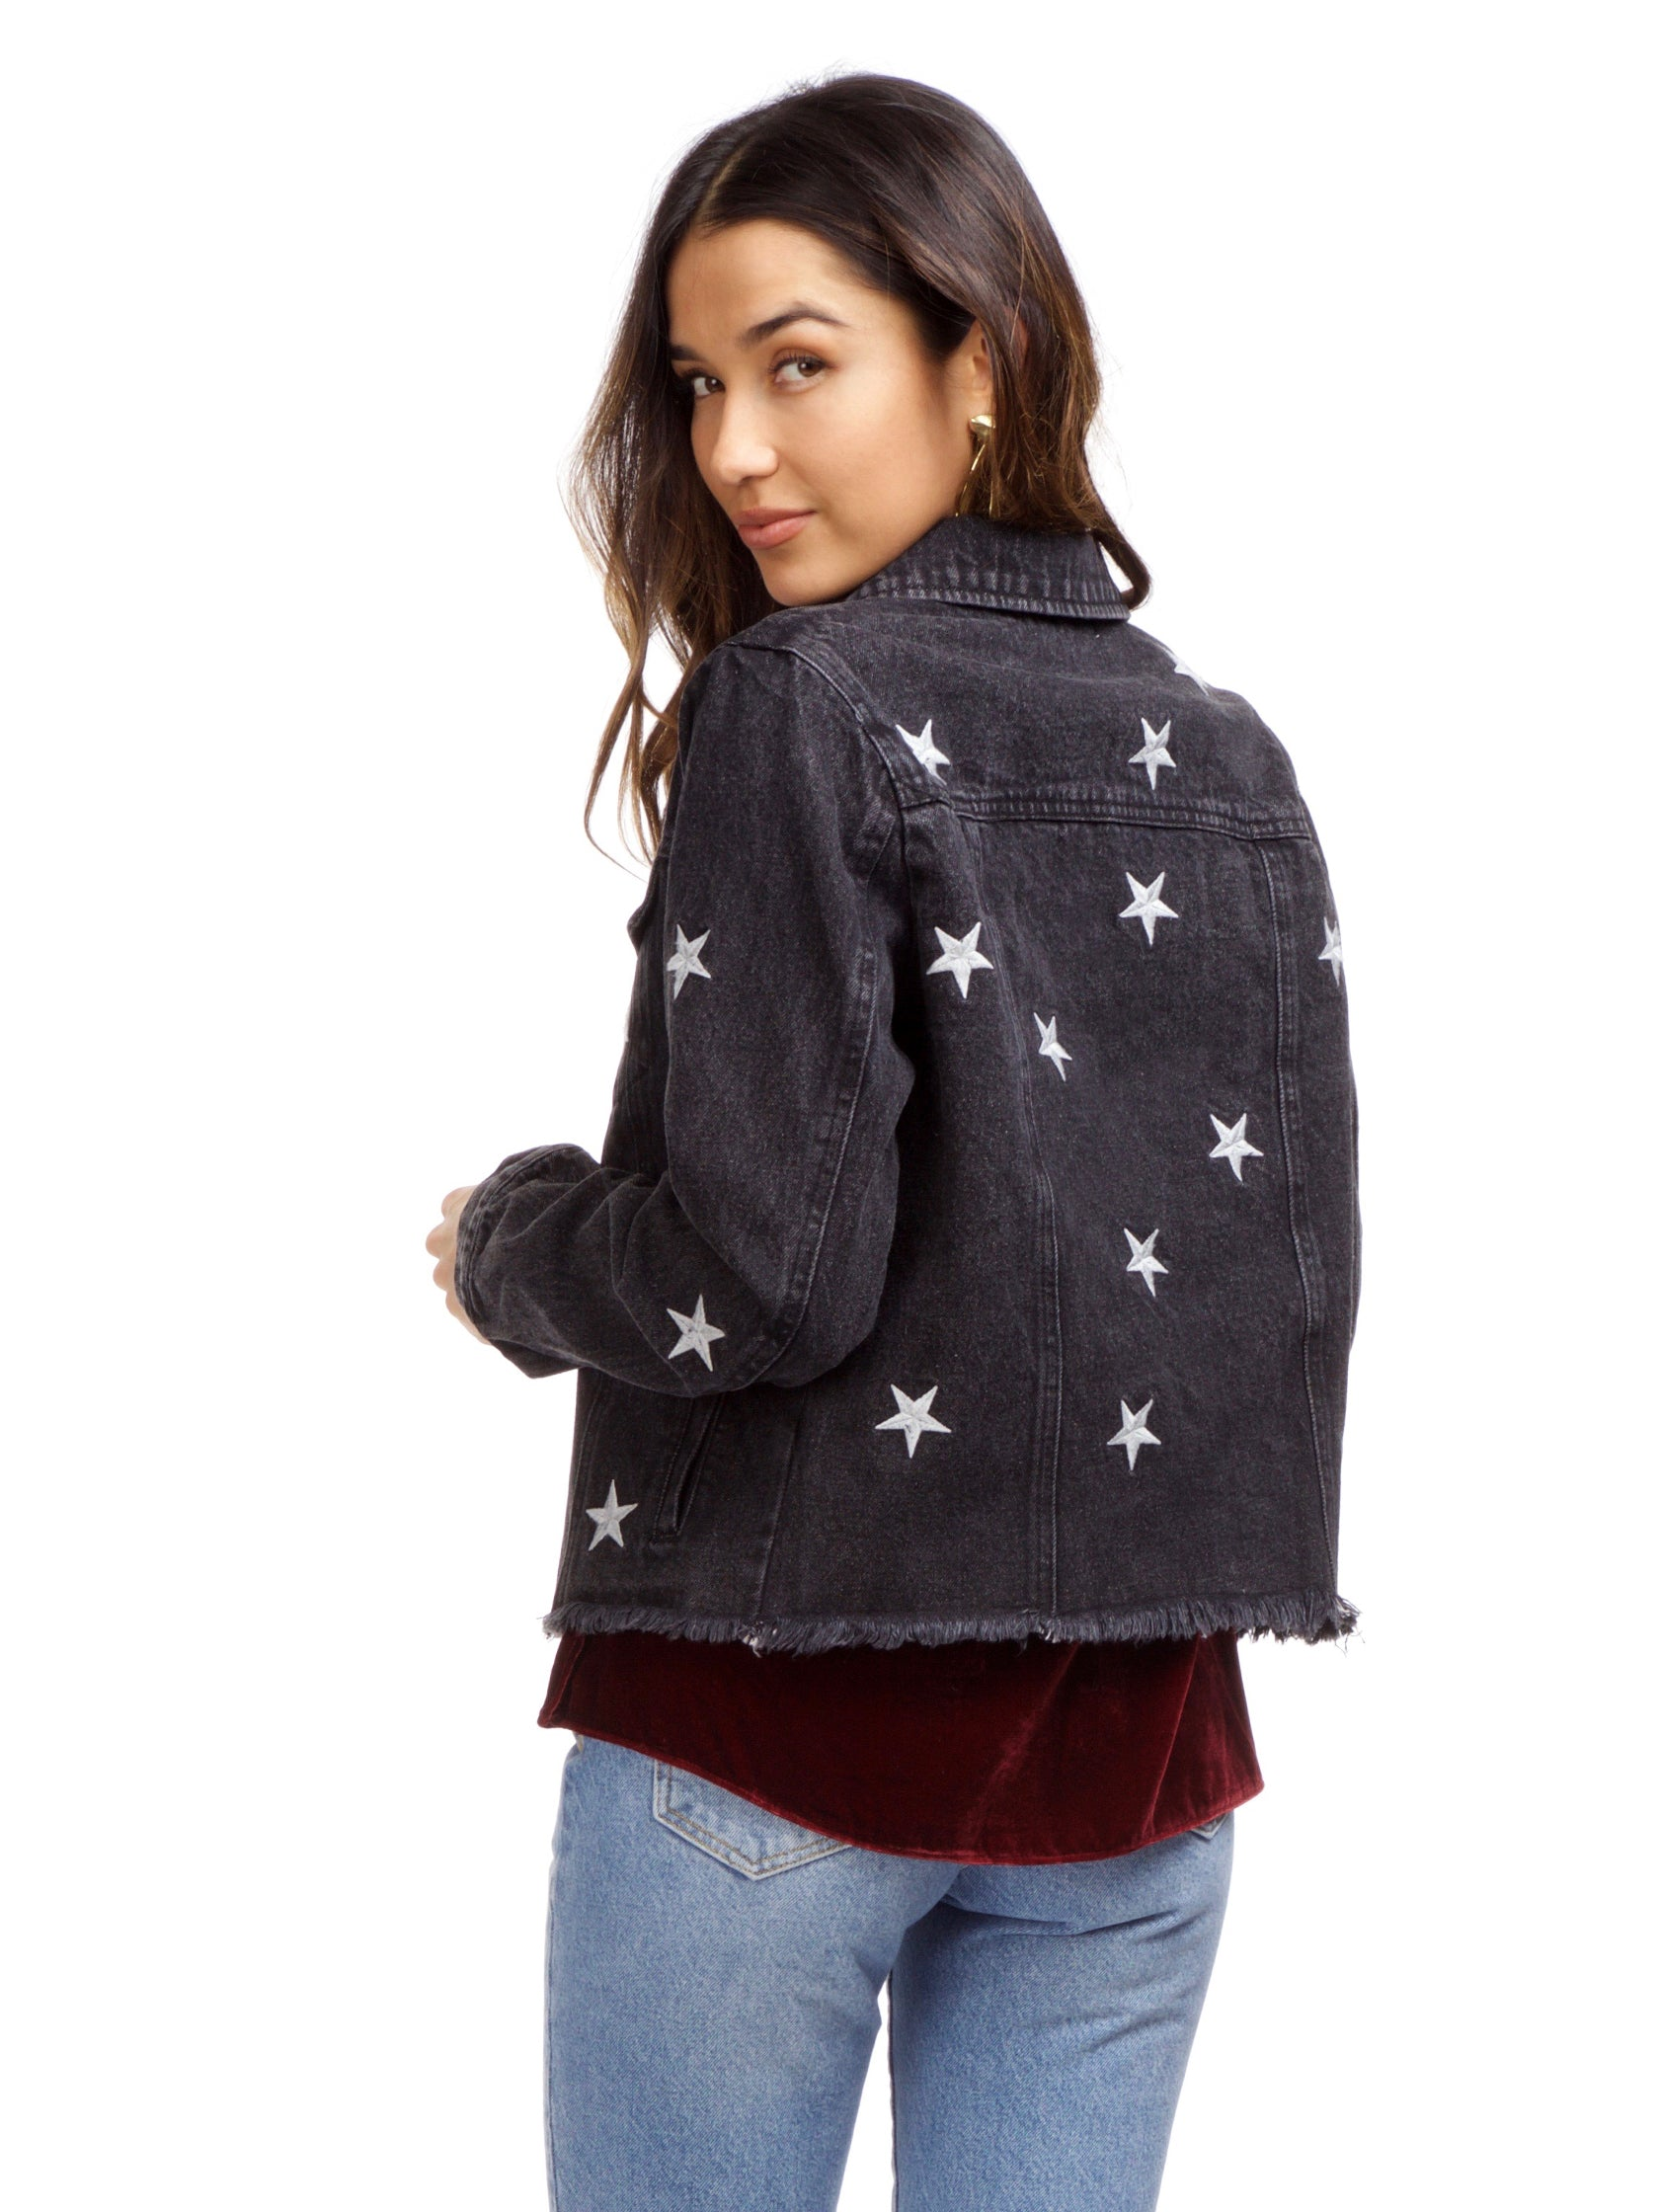 Women outfit in a jacket rental from FashionPass called Stardust Denim Jacket